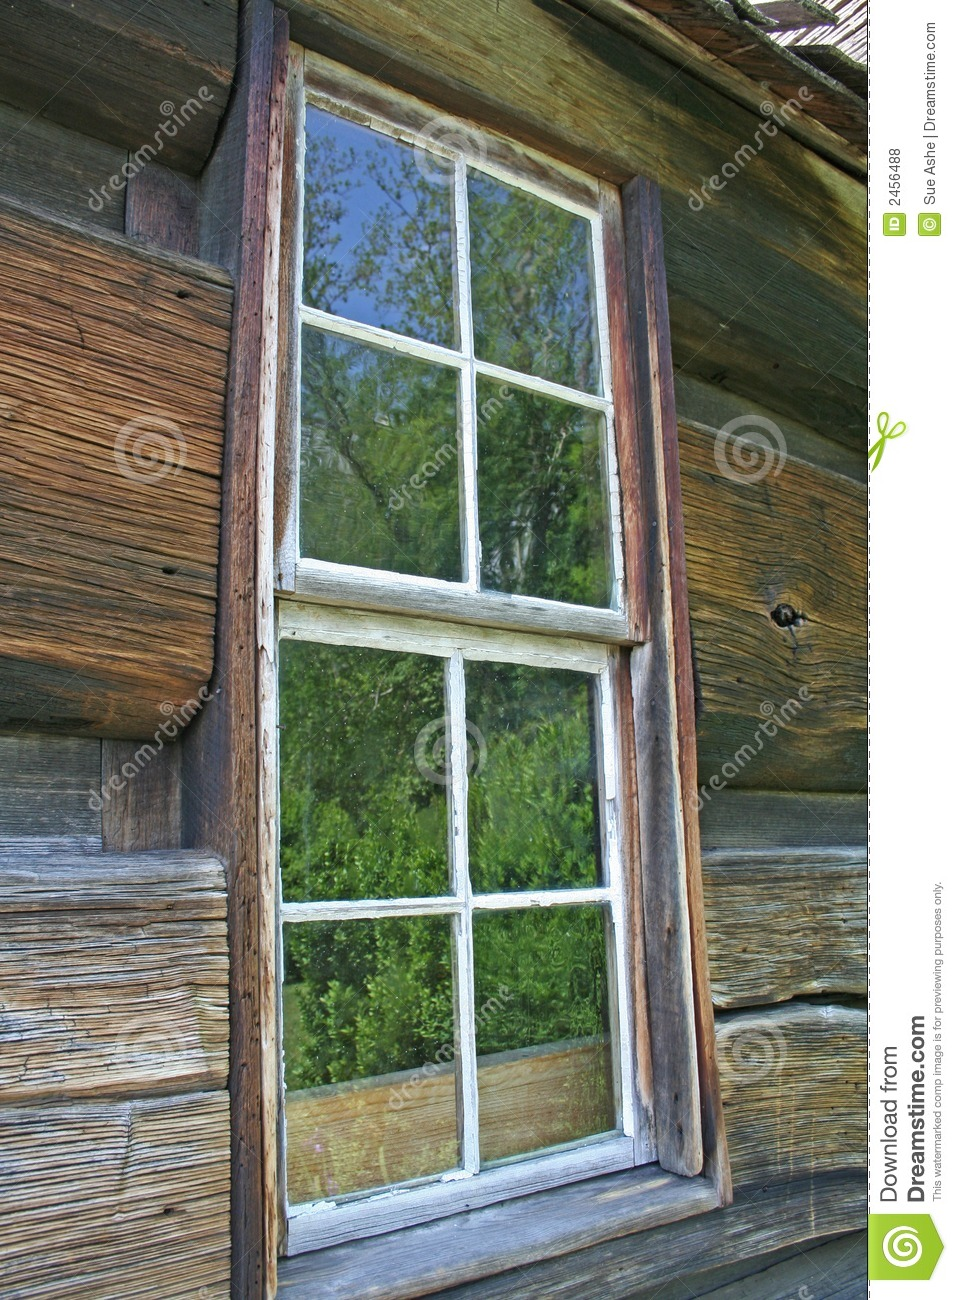 Log cabin window royalty free stock photos image 2456488 for Log cabin window